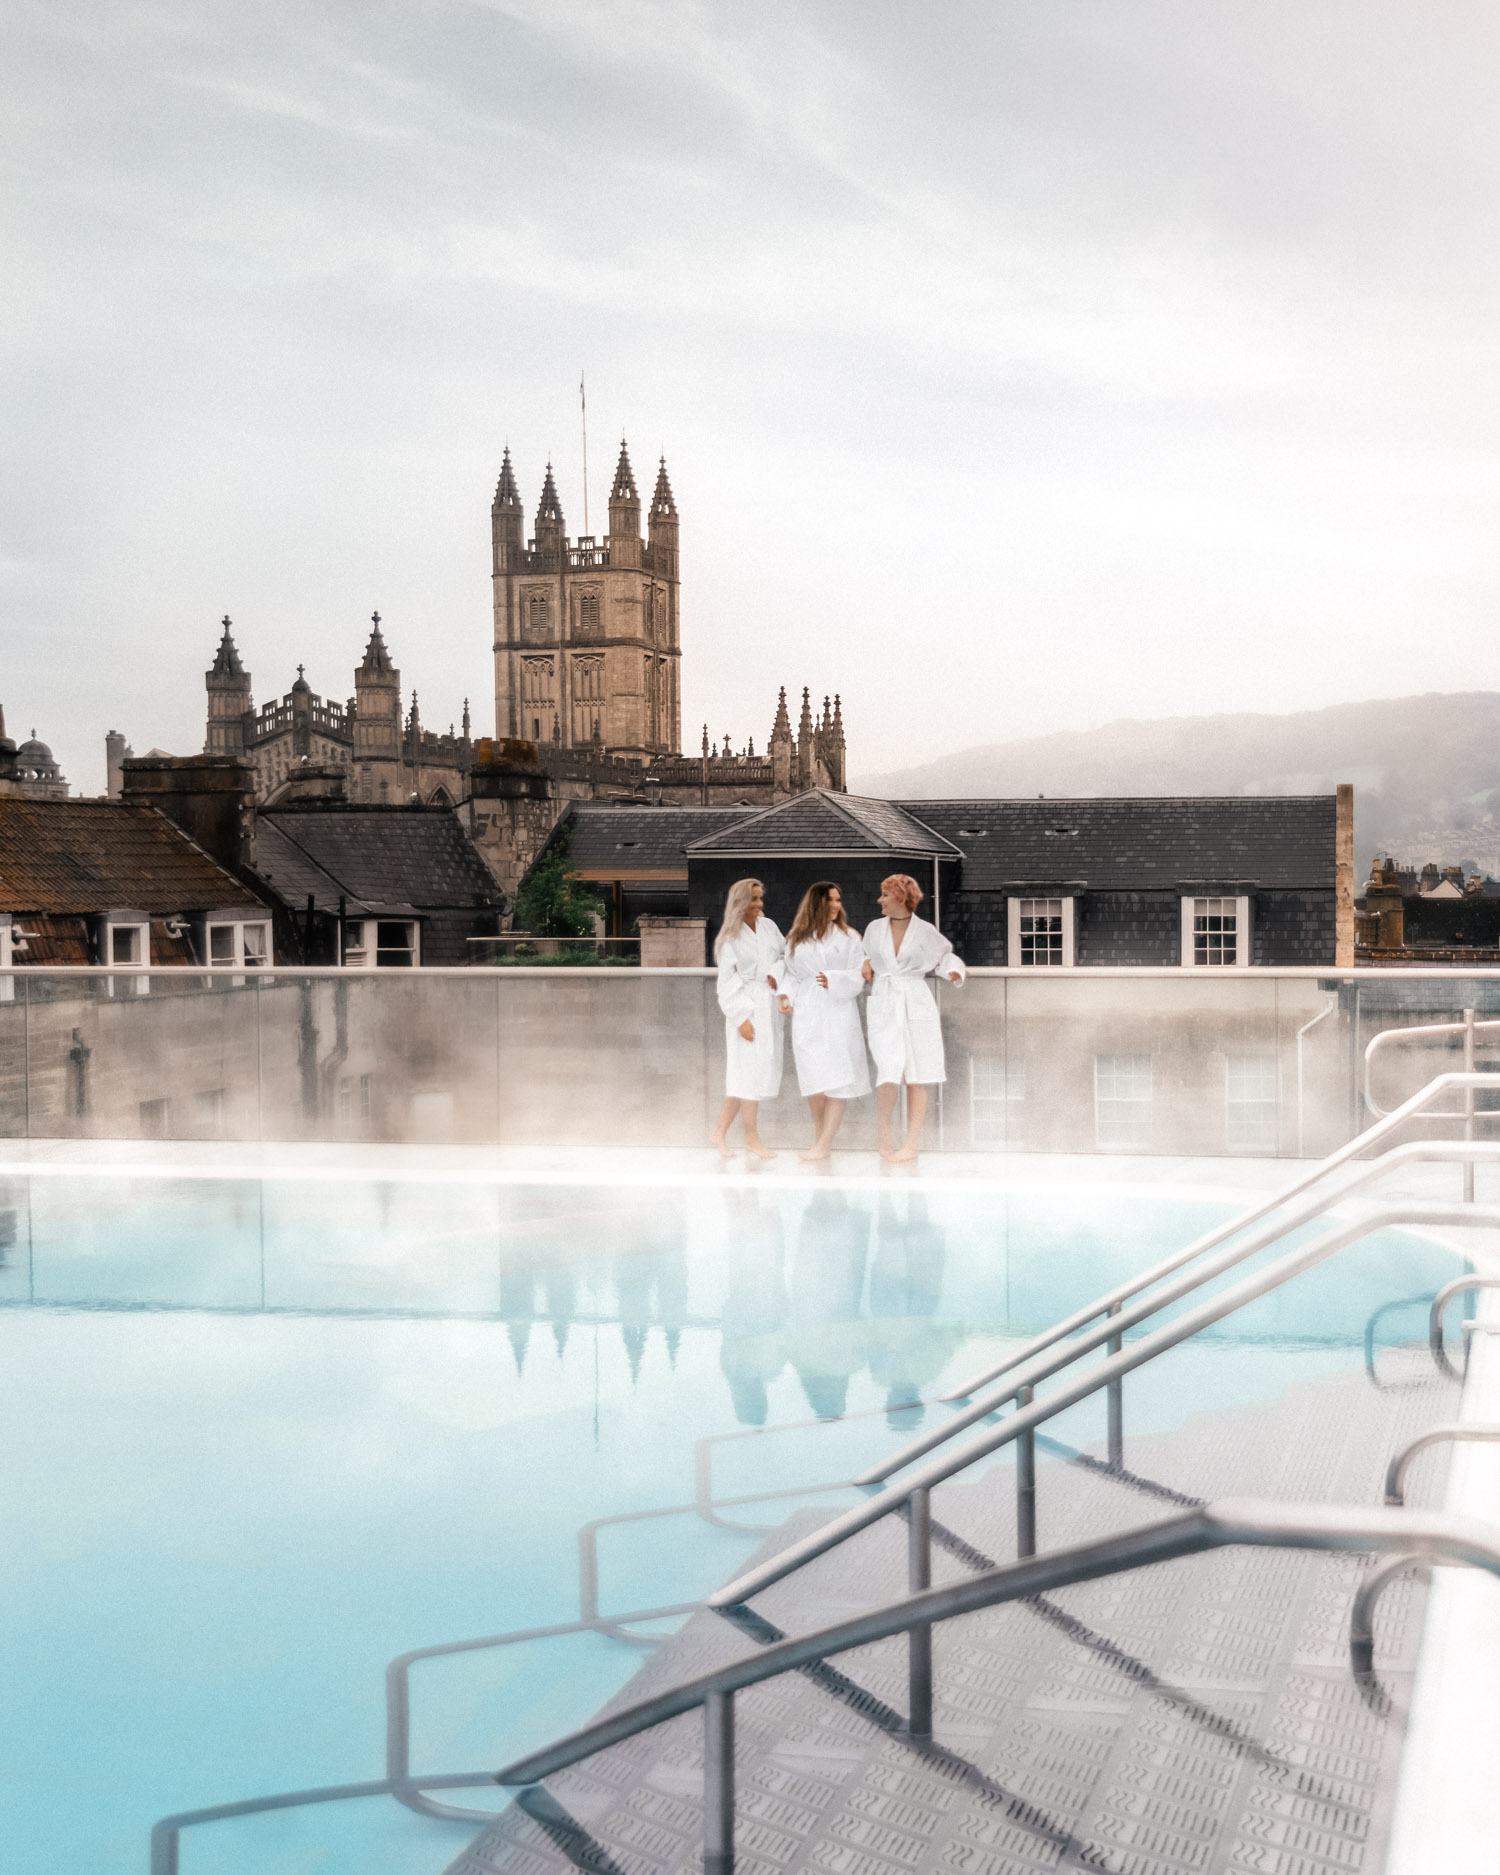 Thermae Bath Spa, Things to Do in Bath, England